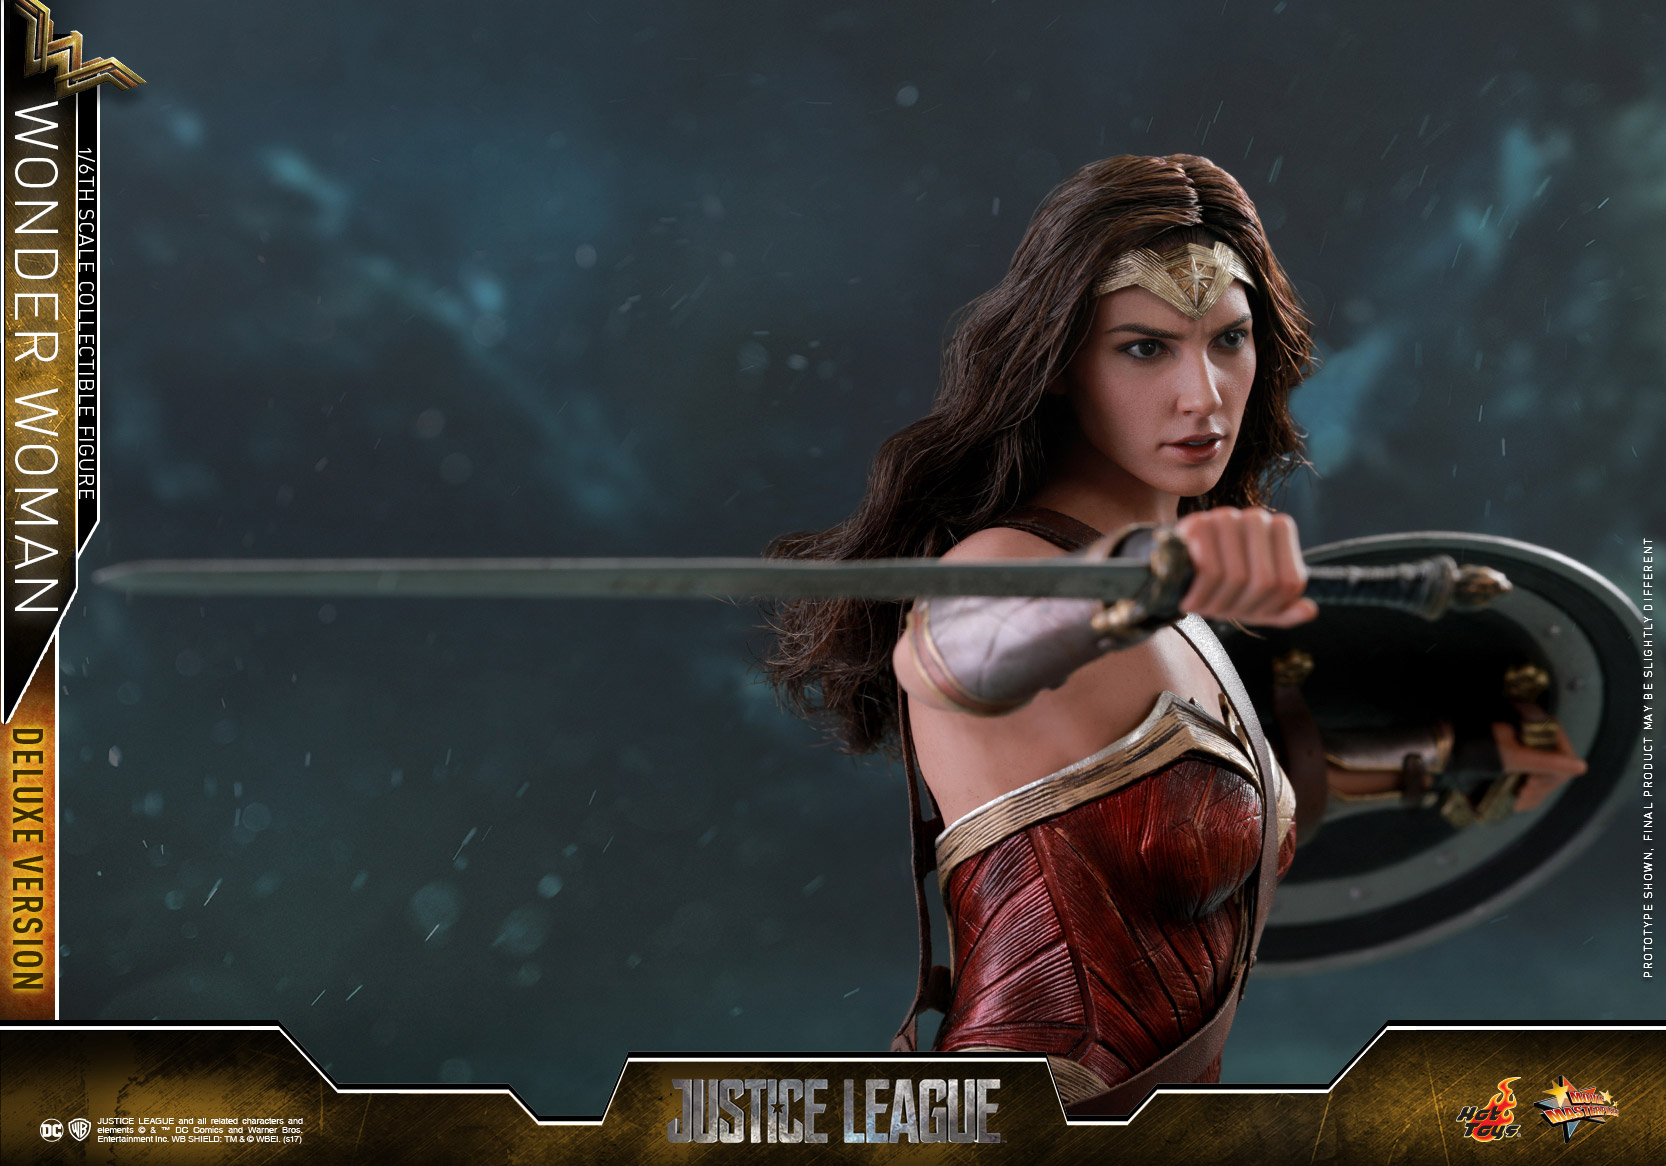 Hot-Toys-Justice-League-Wonder-Woman-collectible-figure-Deluxe_PR-17.jpg